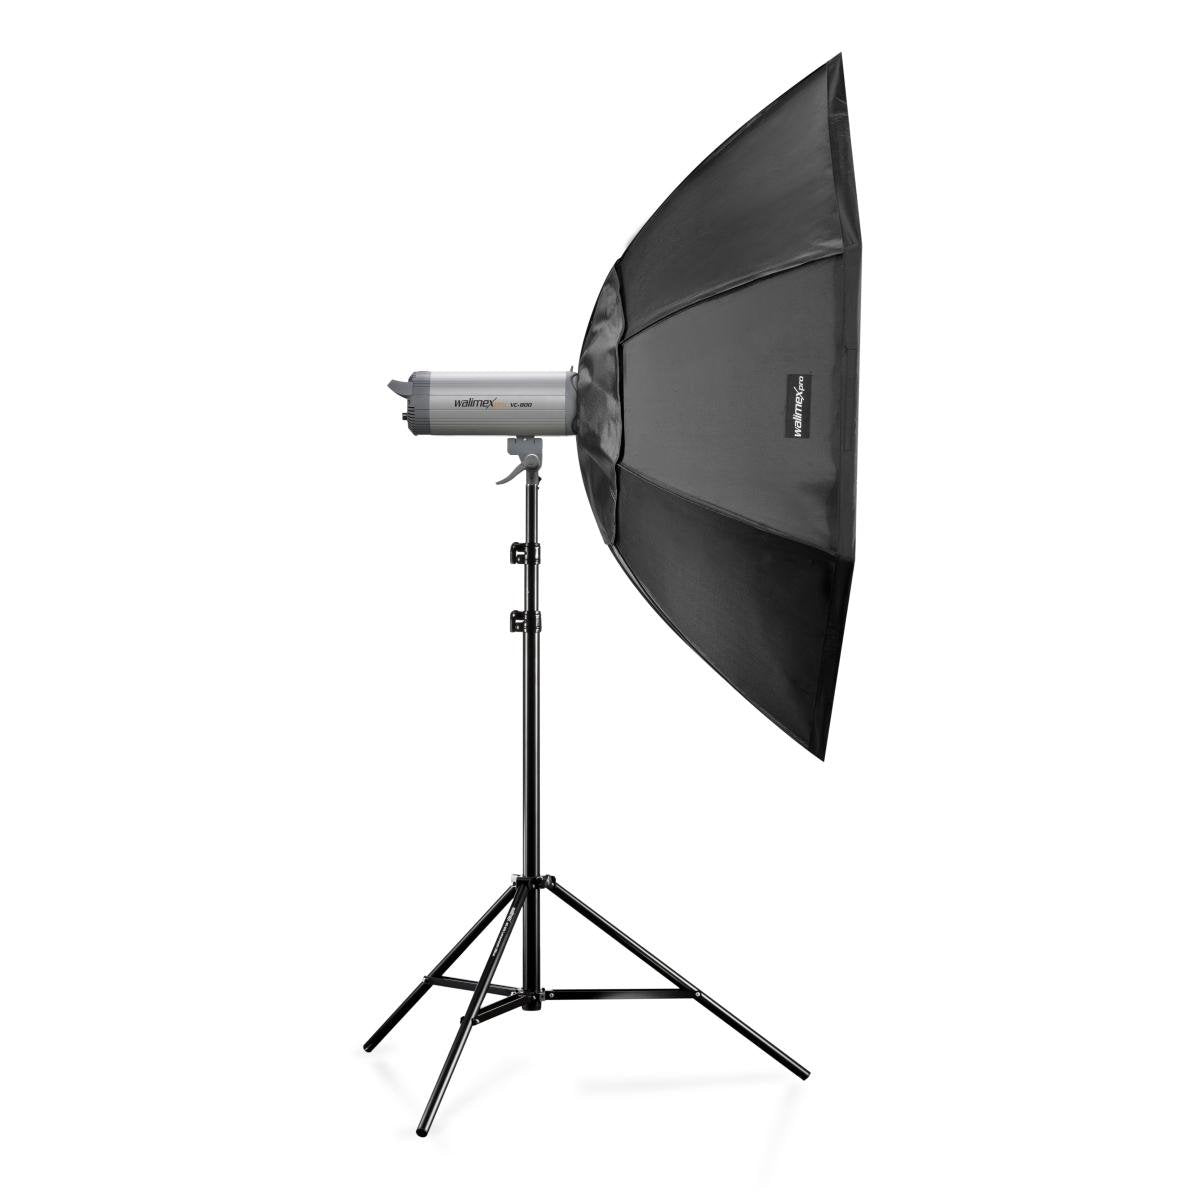 Walimex Pro 140 cm Octagon Softbox für Hensel EH